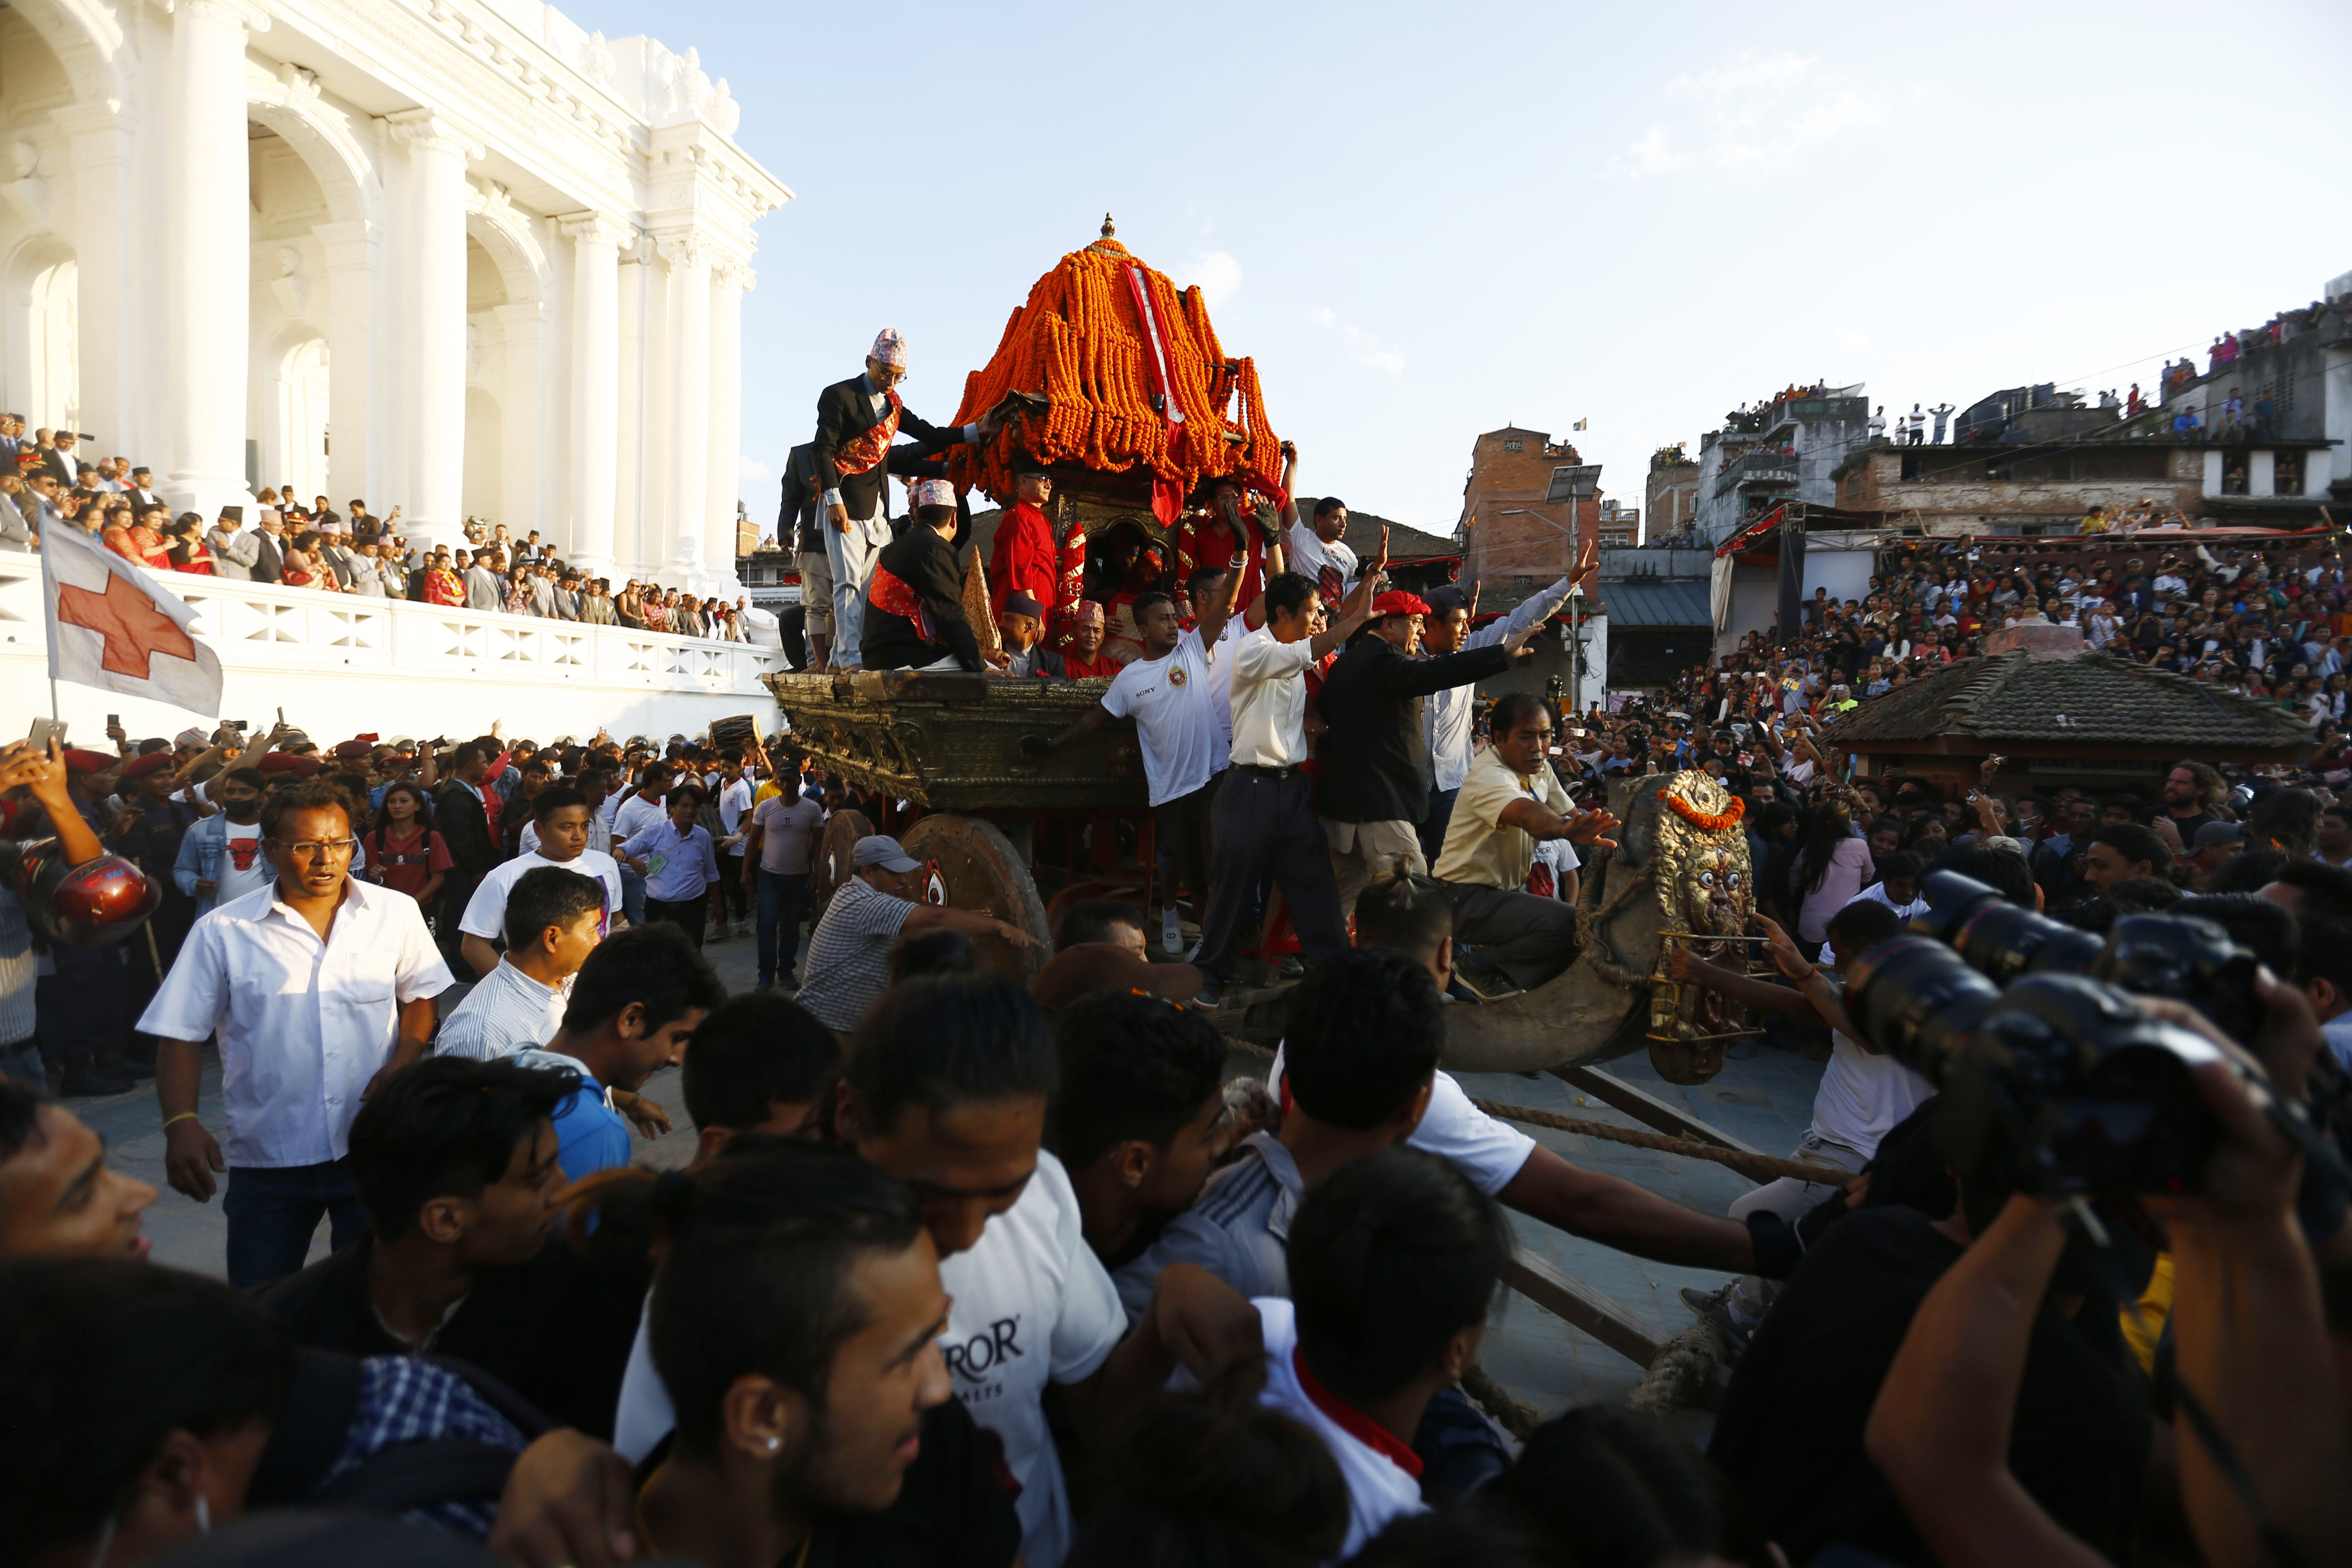 Nepali devotees pull a chariot of the Living Goddess Kumari during Indra Jatra festival, celebrated to honour Indra, the king of heaven and lord of rains, in Kathmandu, on Monday, September 24, 2018. Indra Jatra is the biggest religious street festival held annually in Nepal celebrated by singing, dancing and rejoicing. Devotees offer prayers along with other rituals in the eight-day festival celebrated by both Hindus and Buddhists. Photo: Skanda Gautam/THT